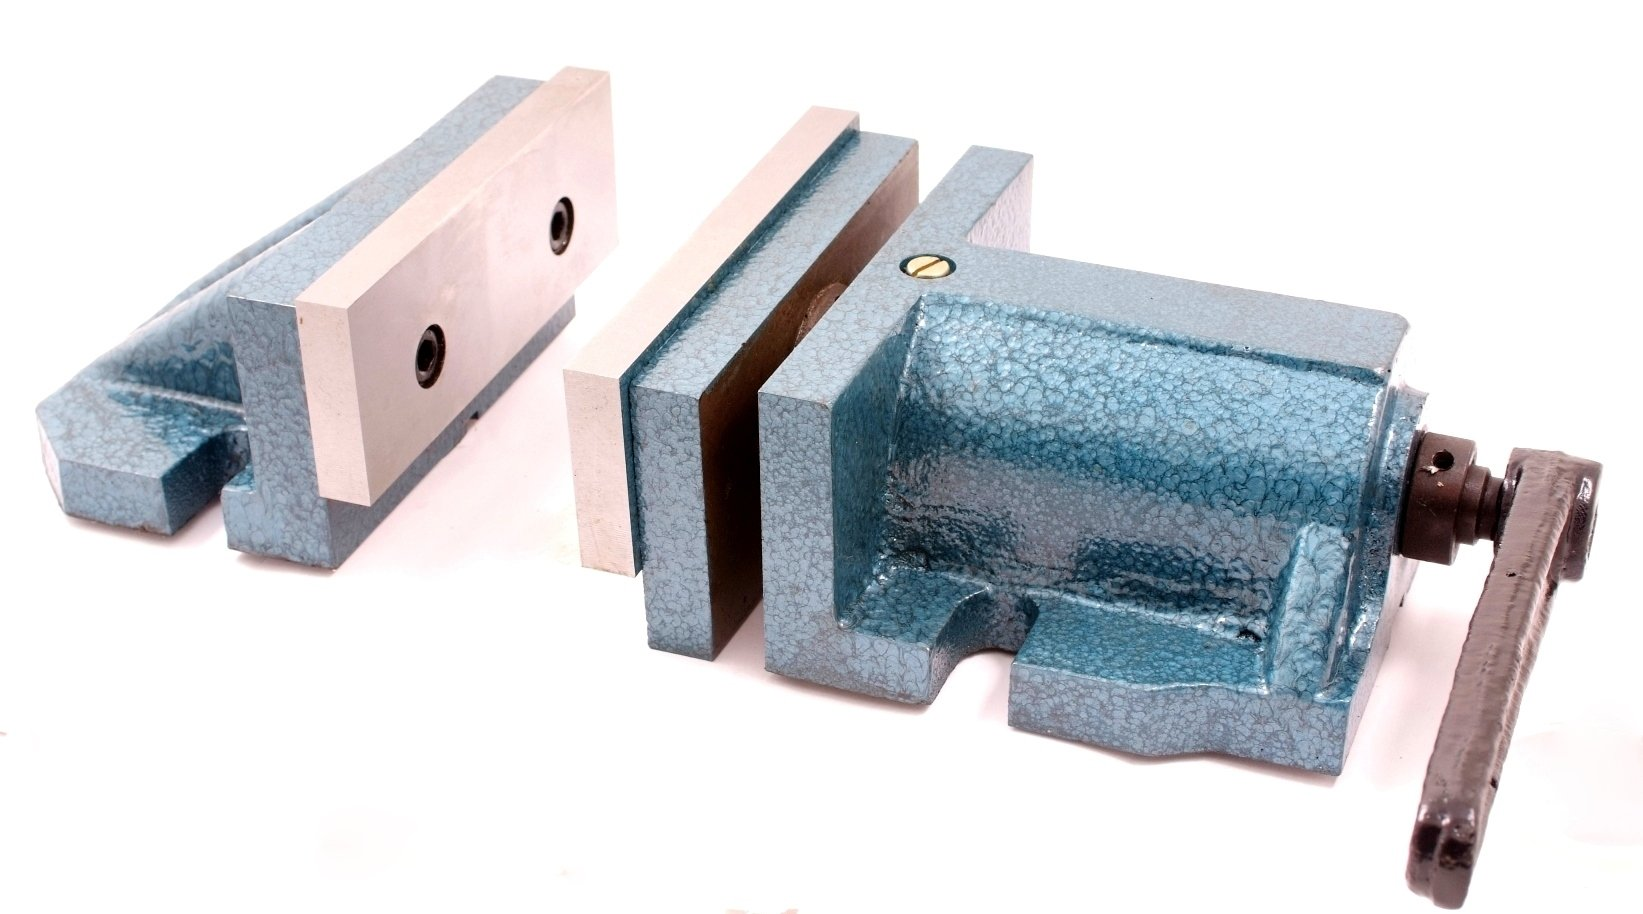 HHIP 3900-1728 2 Piece Quick Clamp Mill Vise, 8'' Width x 4'' Depth Jaw, .5'' Clamp (Pack of 1) by HHIP